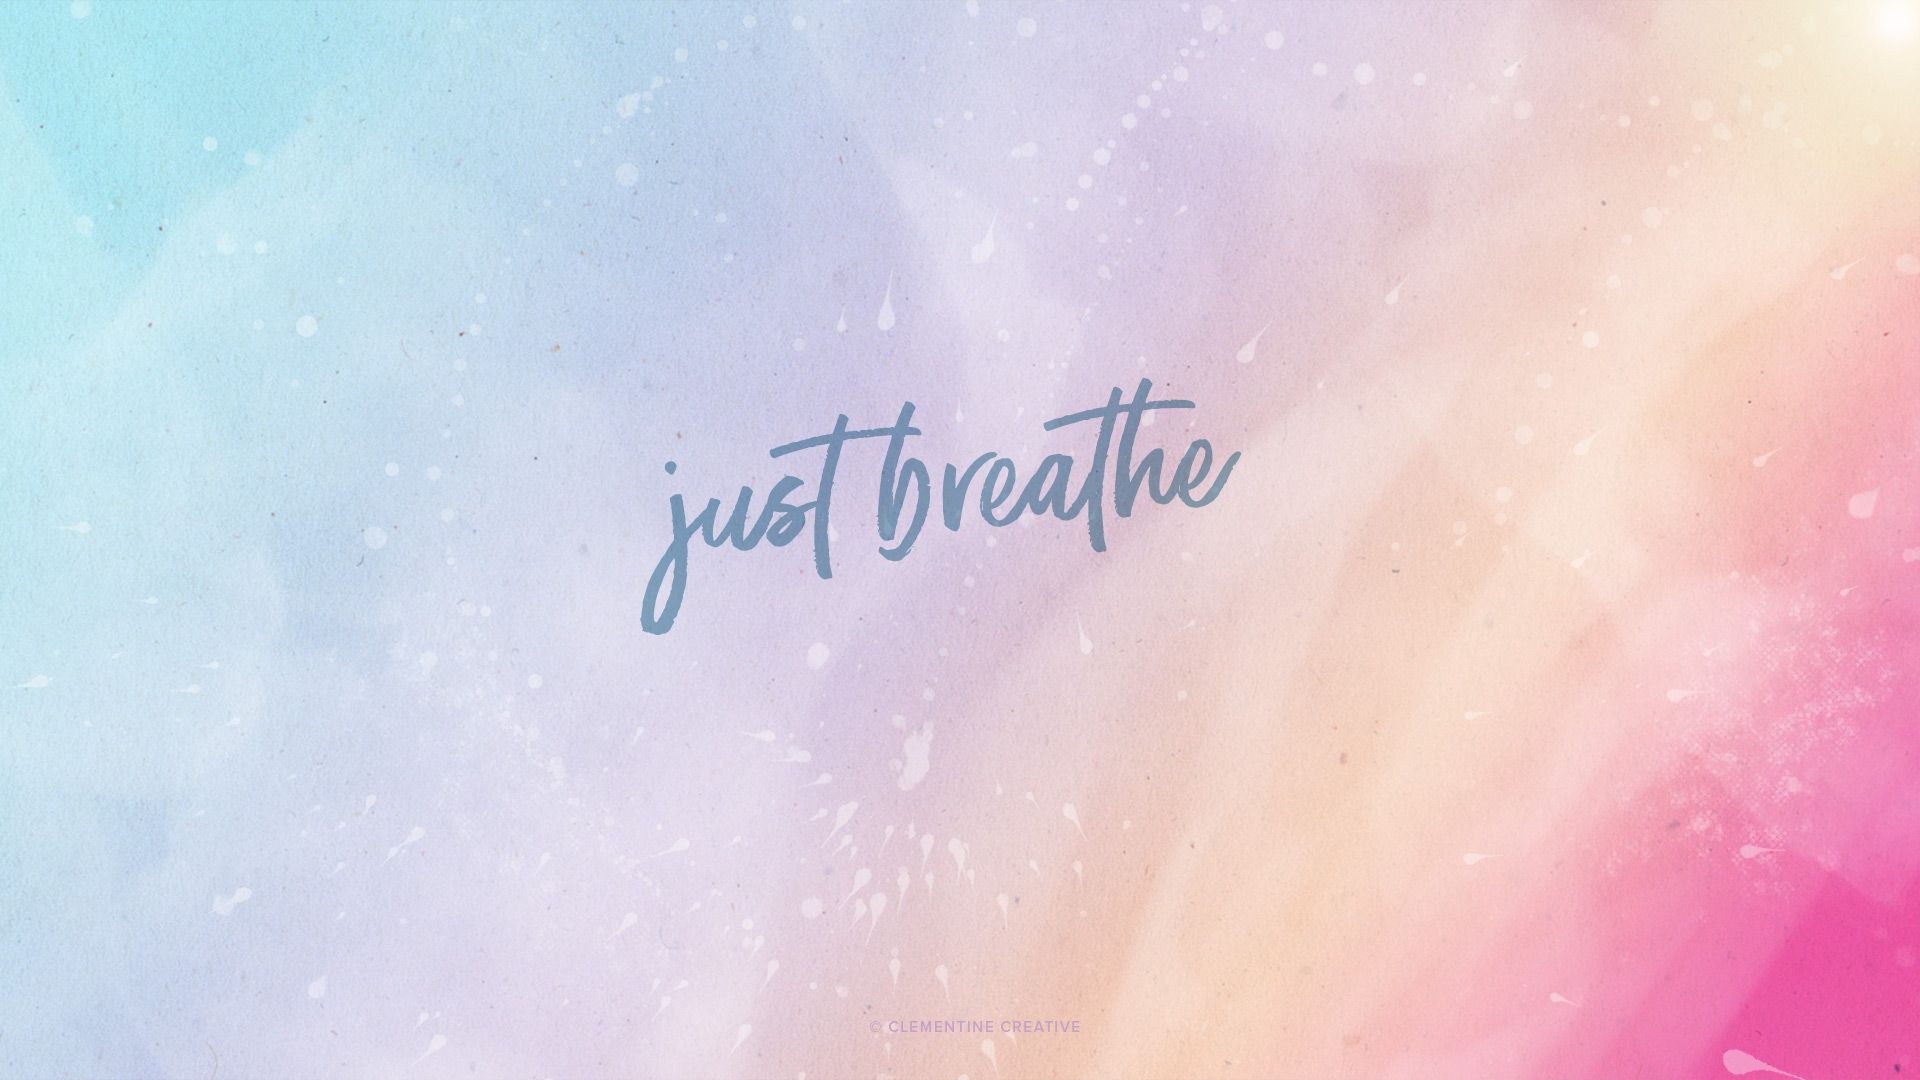 Just Breathe Free Desktop Tablet And Mobile Wallpapers Imac Wallpaper Cute Desktop Wallpaper Aesthetic Desktop Wallpaper